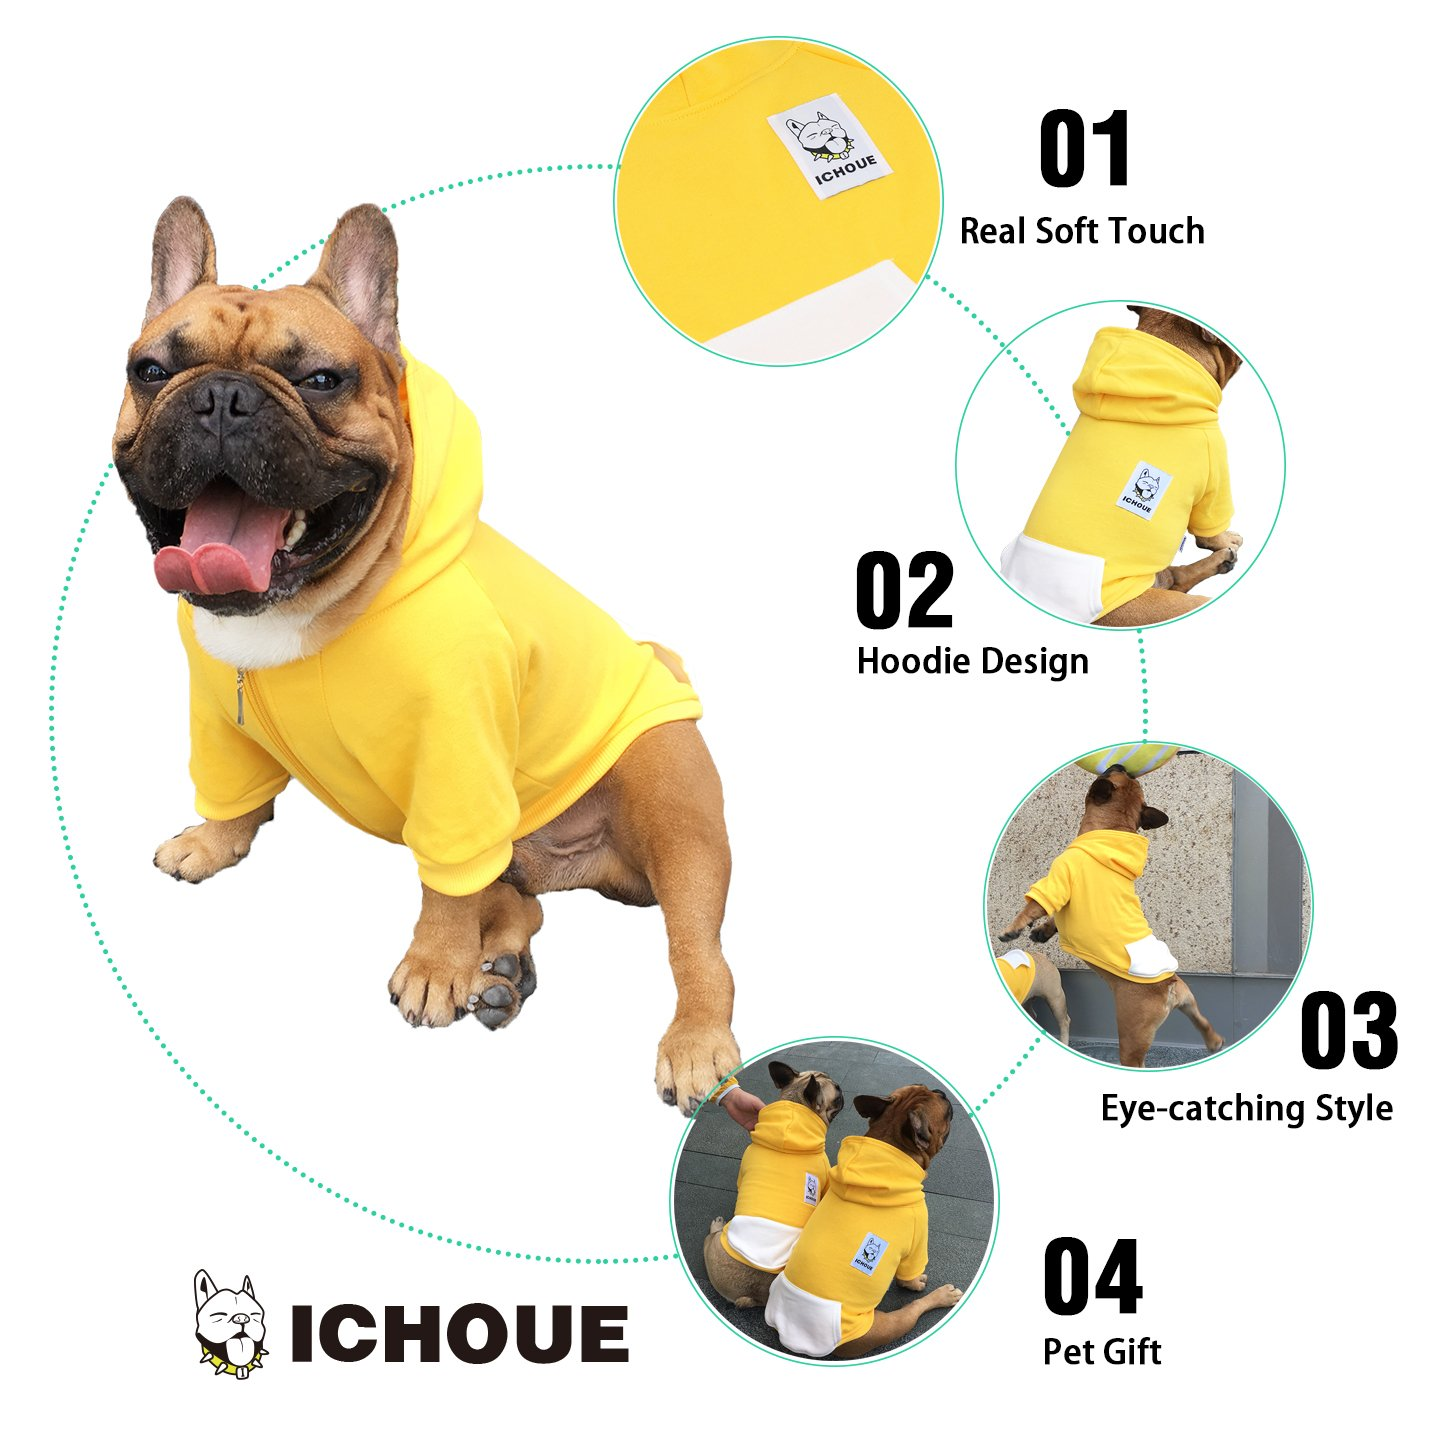 iChoue Pets Dog Clothes Hoodie Hooded French Bulldog Costume Pullover Cotton Winter Warm Coat Puppy Corgi Clothing - Yellow/Size M by iChoue (Image #5)